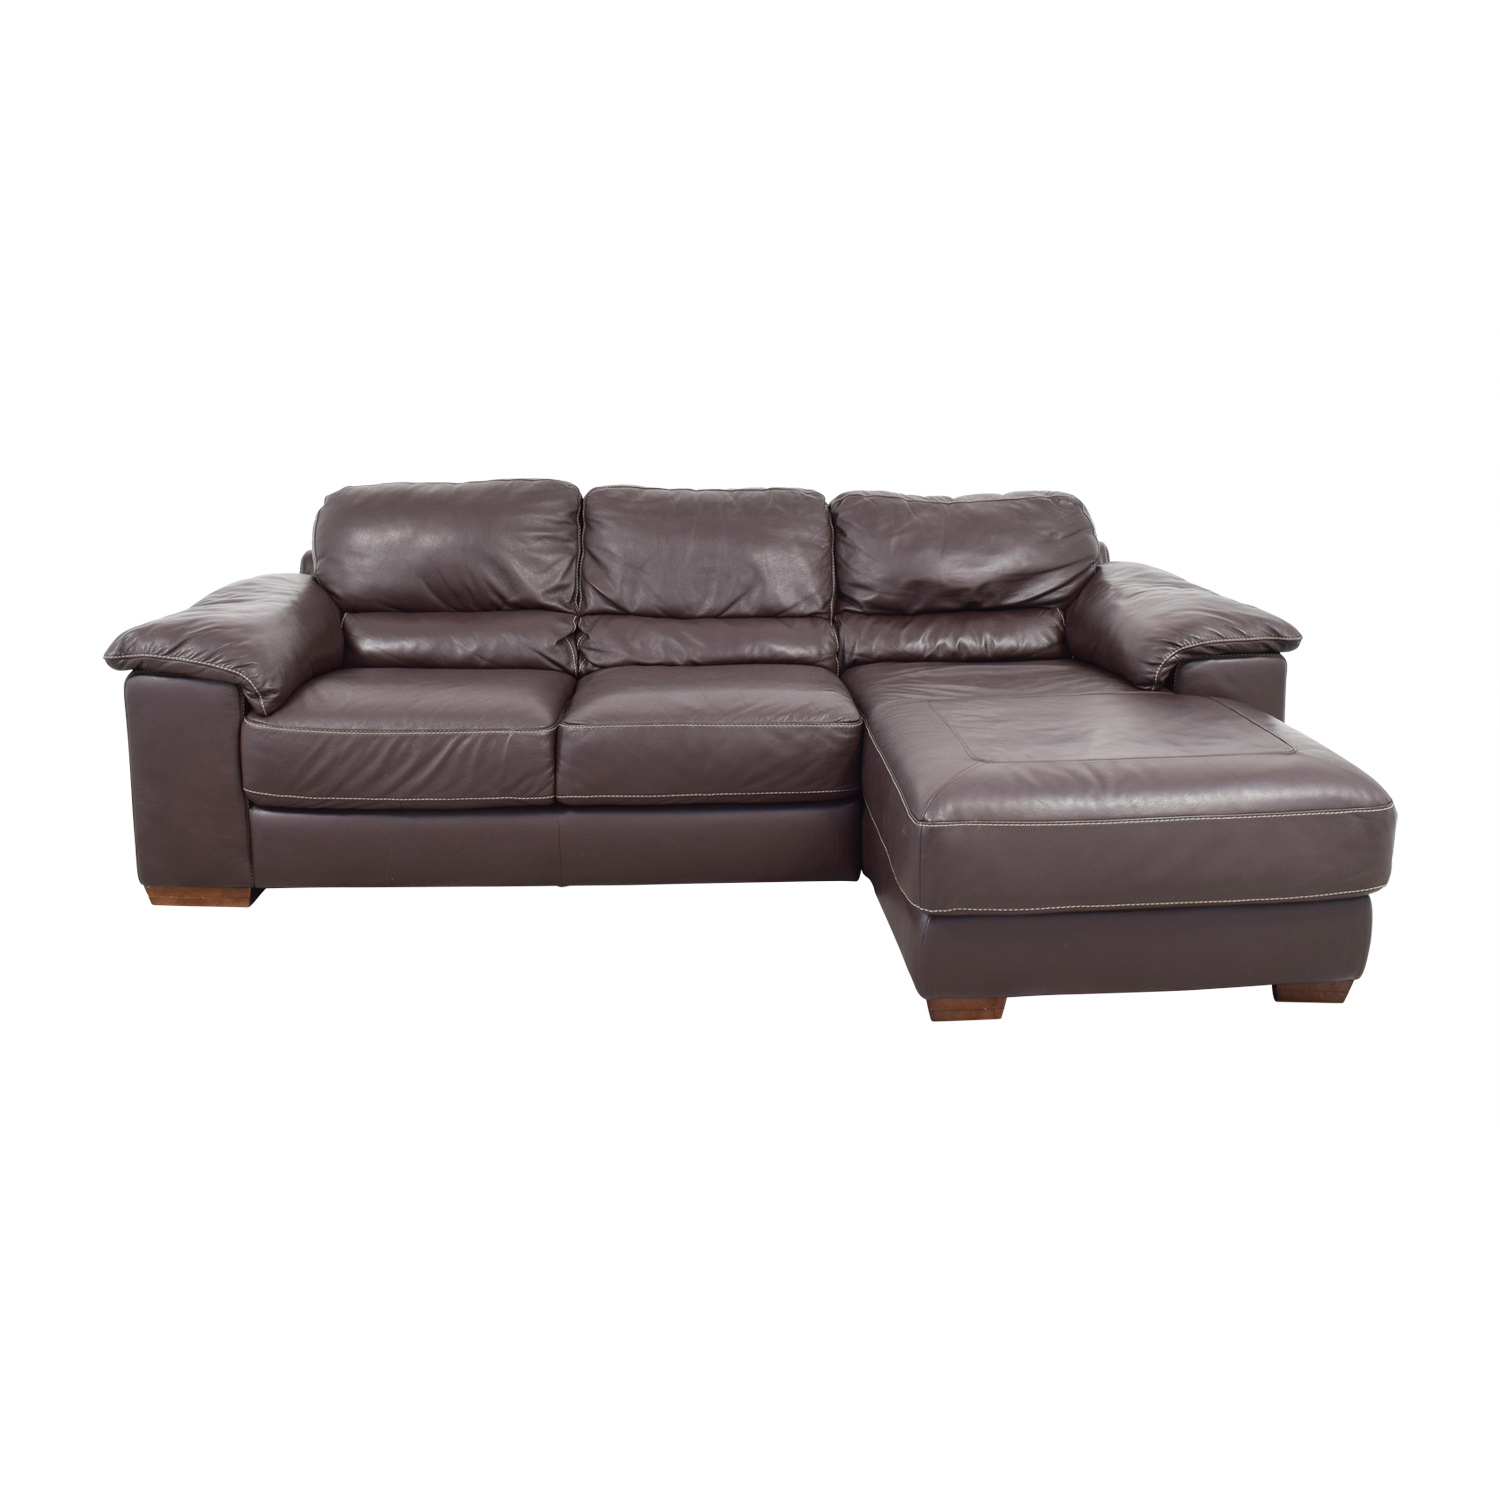 Stupendous Cindy Crawford Leather Sectional Unemploymentrelief Wooden Chair Designs For Living Room Unemploymentrelieforg